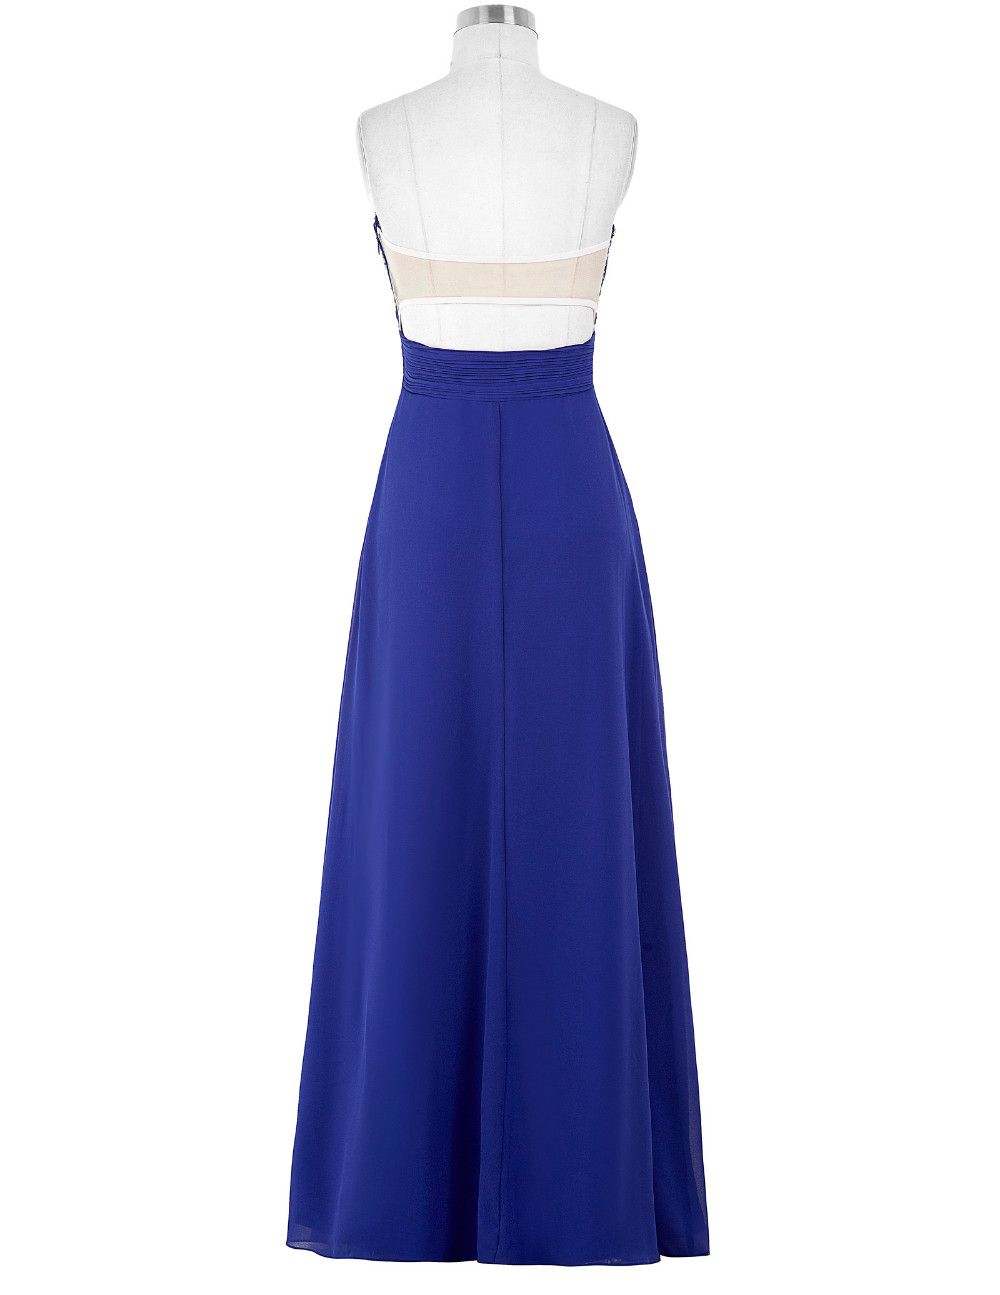 Lavender Green Royal Blue Long Chiffon Bridesmaid Dress 8